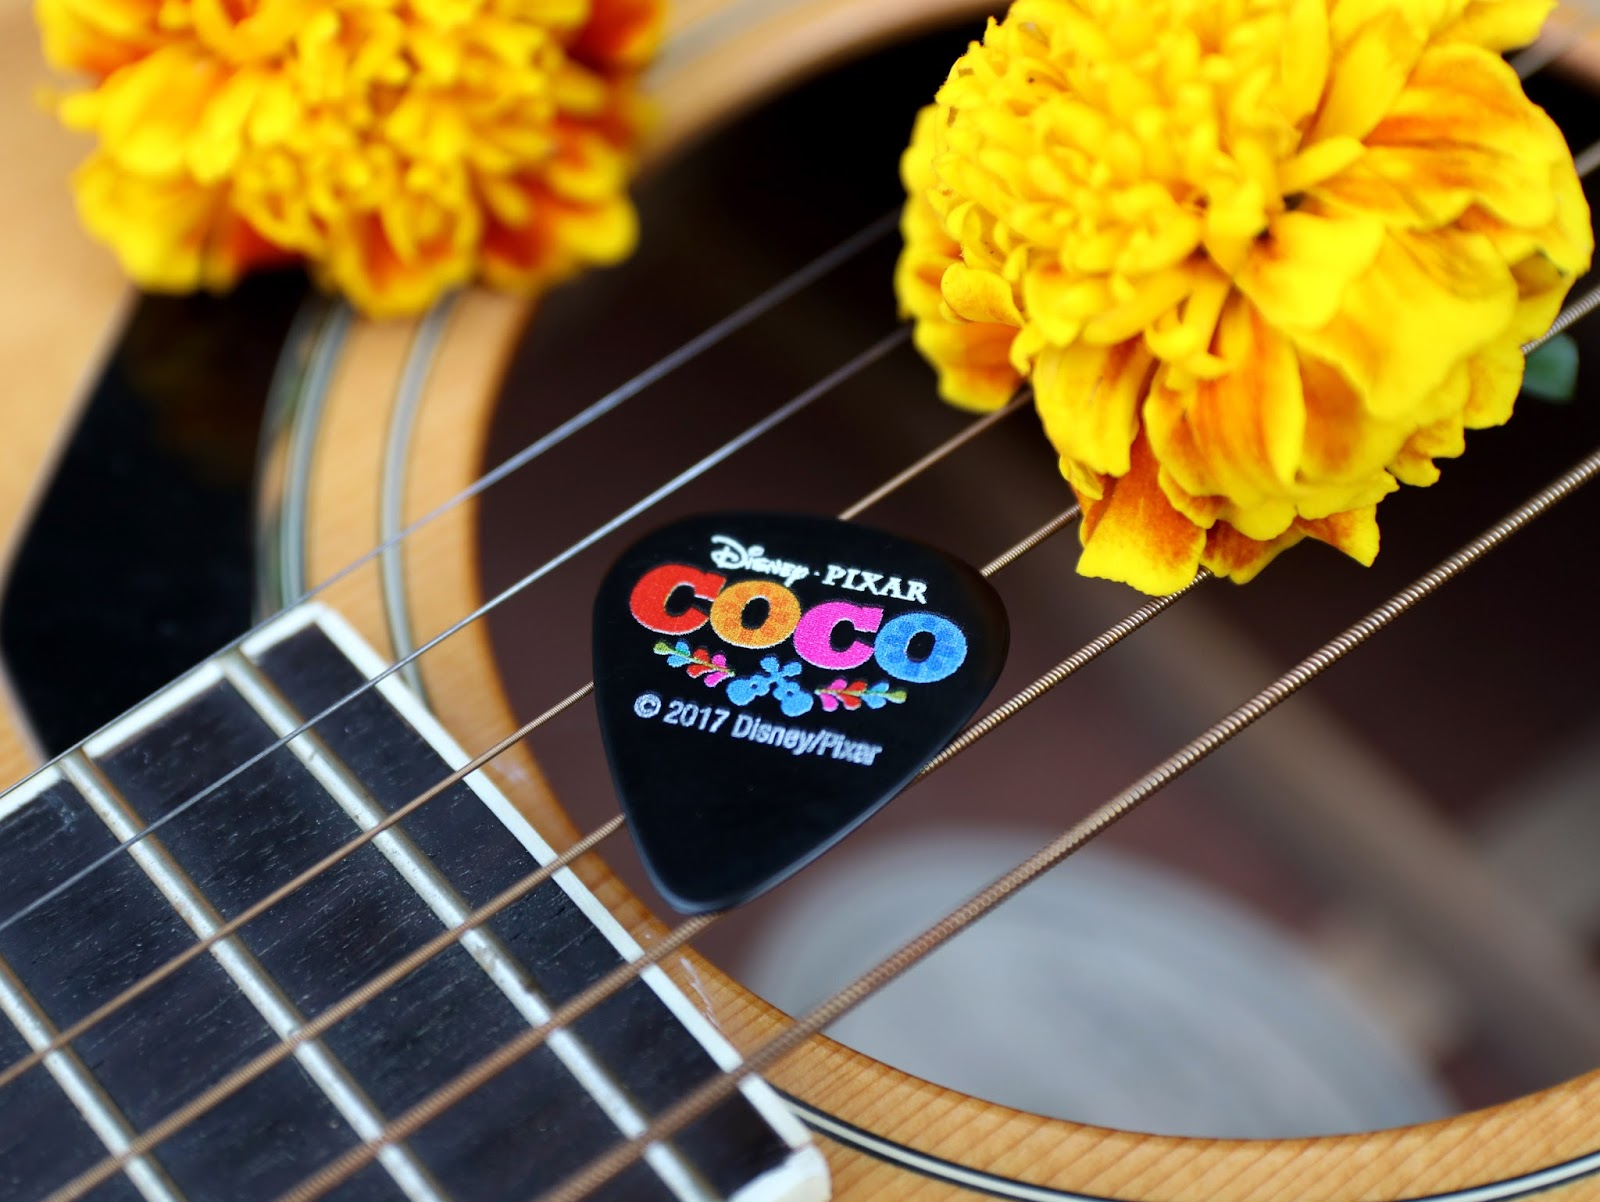 pixar coco guitar pick d23 expo